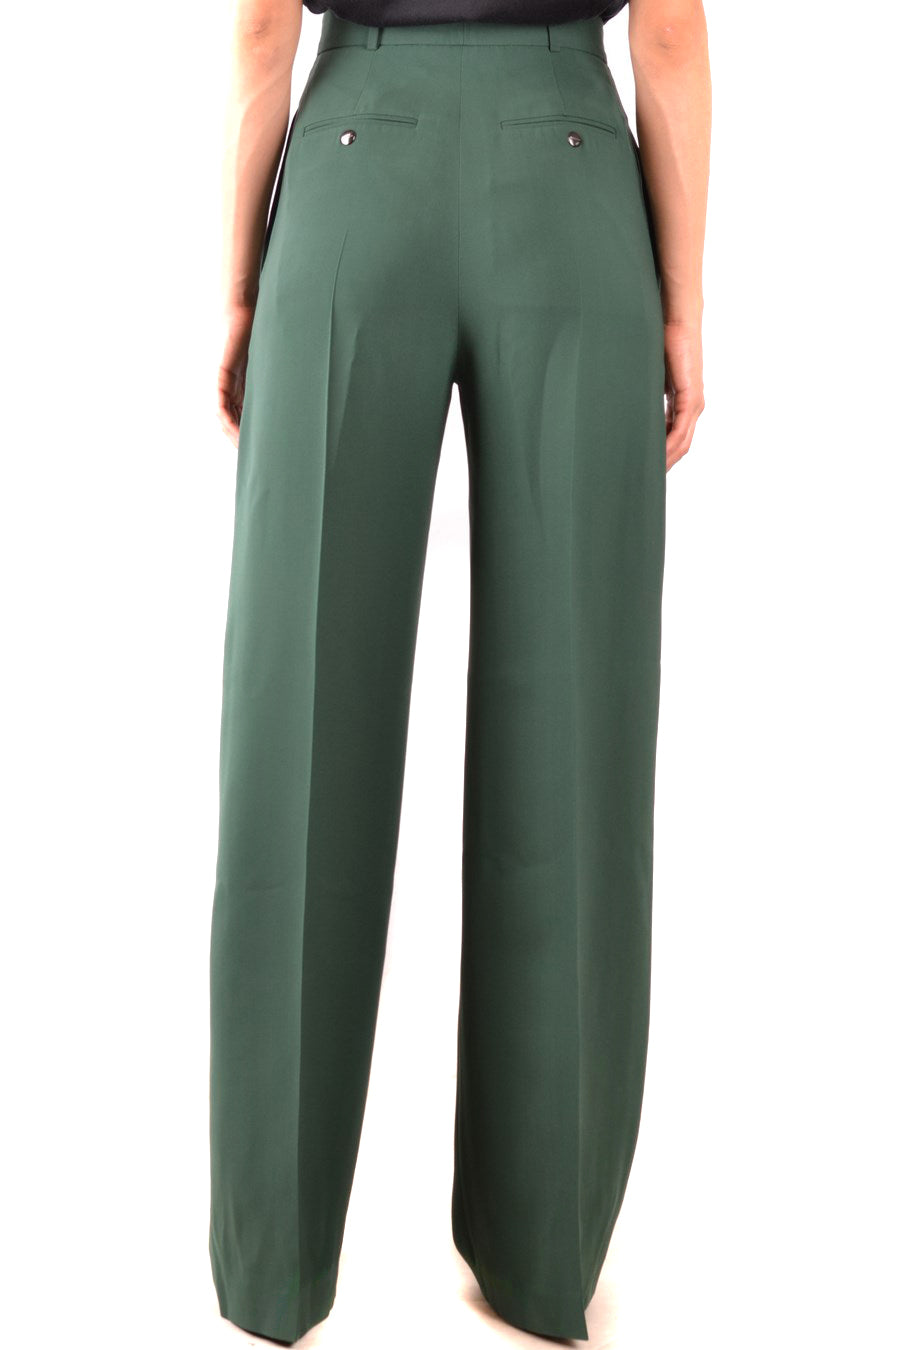 Trousers Burberry-Trousers - WOMAN-Product Details Terms: New With LabelYear: 2018Main Color: GreenGender: WomanMade In: RomaniaManufacturer Part Number: 8001948 A1472Size: ItSeason: Fall / WinterClothing Type: TrousersComposition: Wool 12%, Silk 88%-Keyomi-Sook